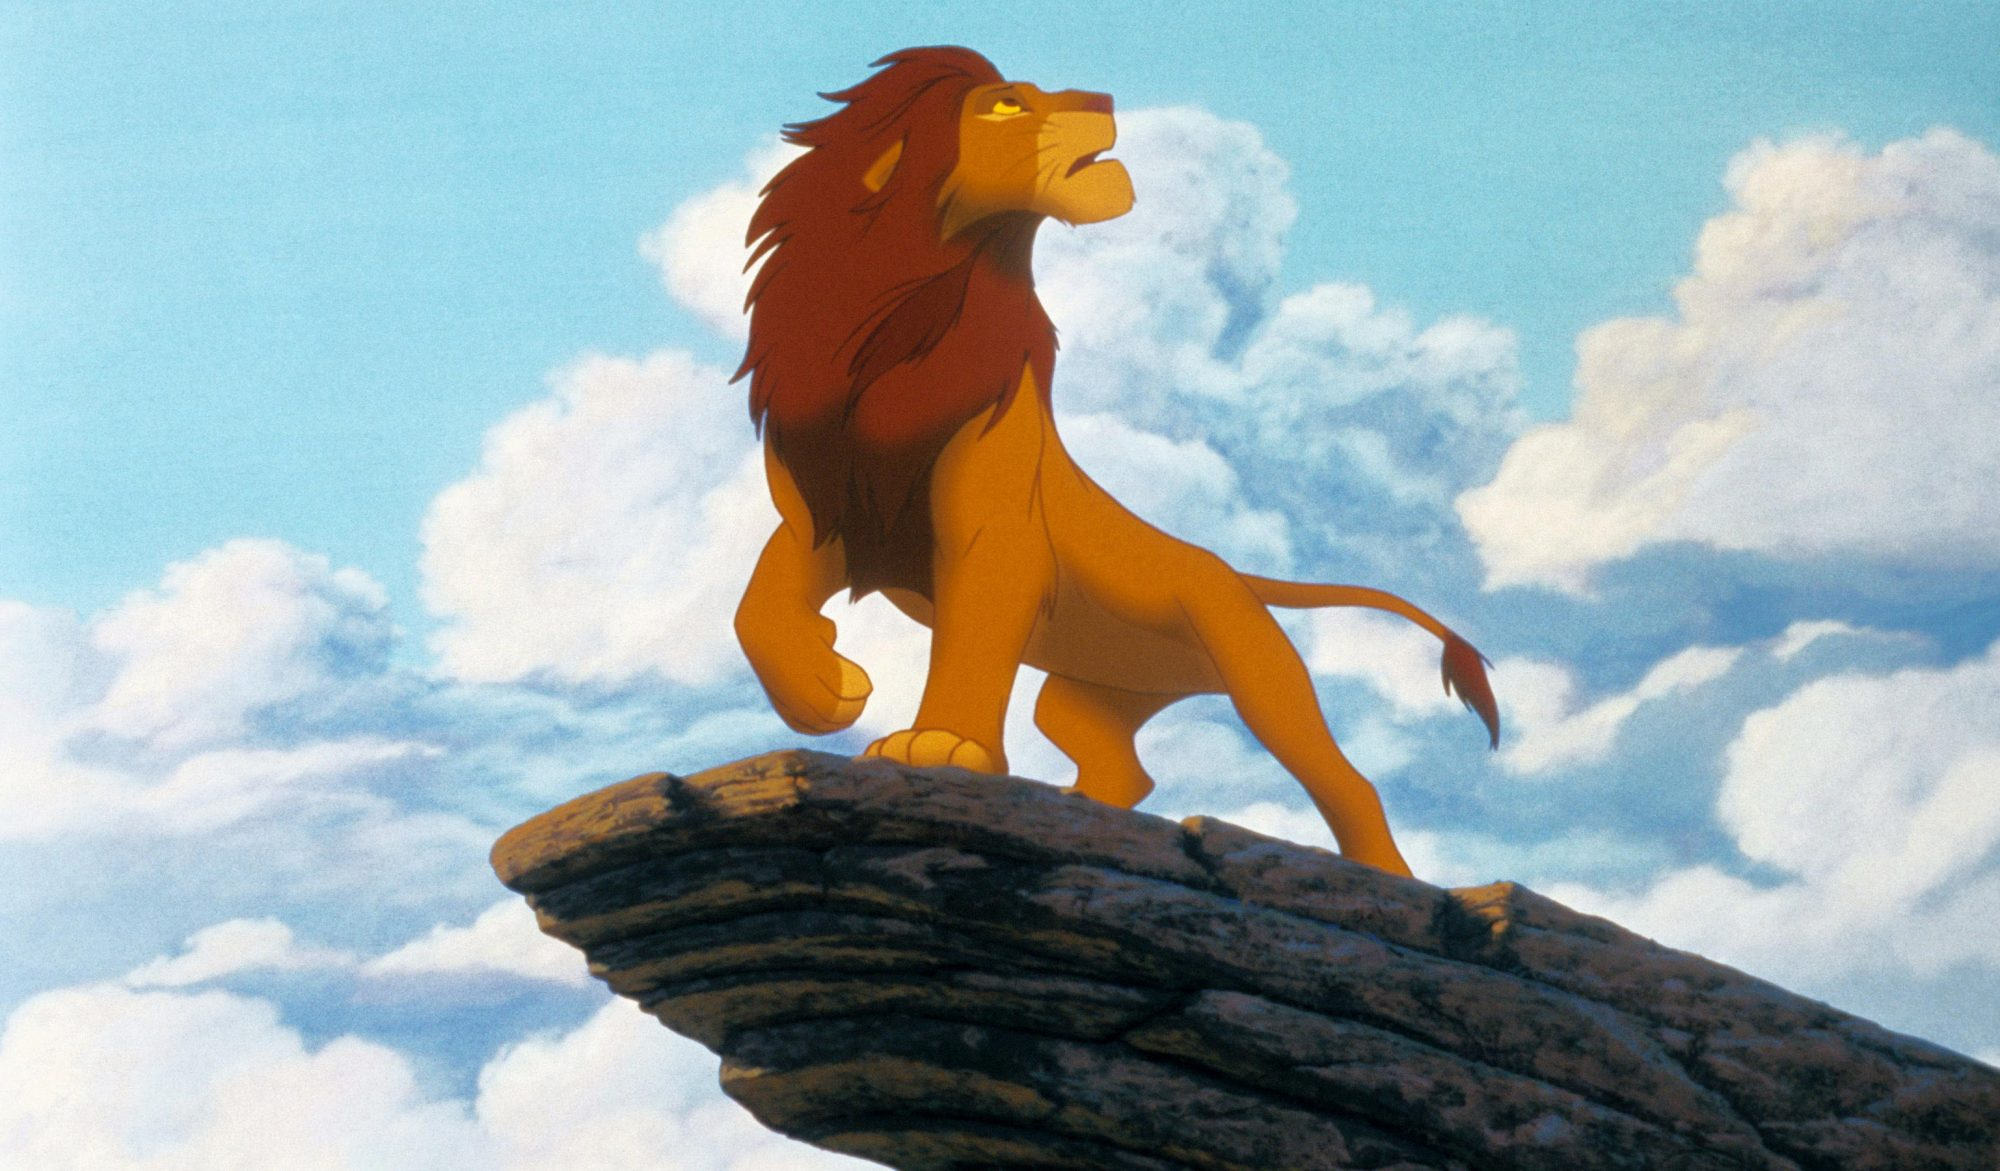 Disney Movies The Lion King Aladdin The Little Mermaid Favored In These States Ew Com